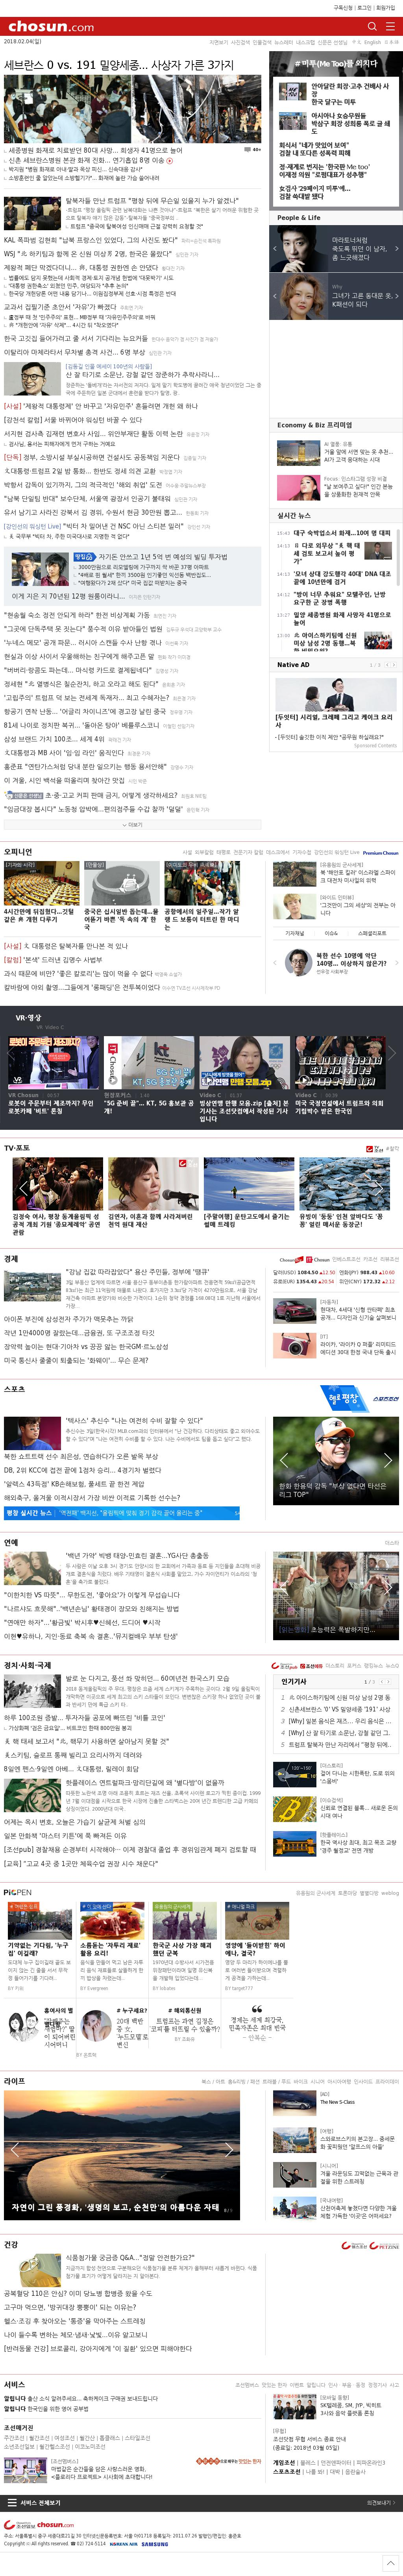 chosun.com at Saturday Feb. 3, 2018, 6:02 p.m. UTC